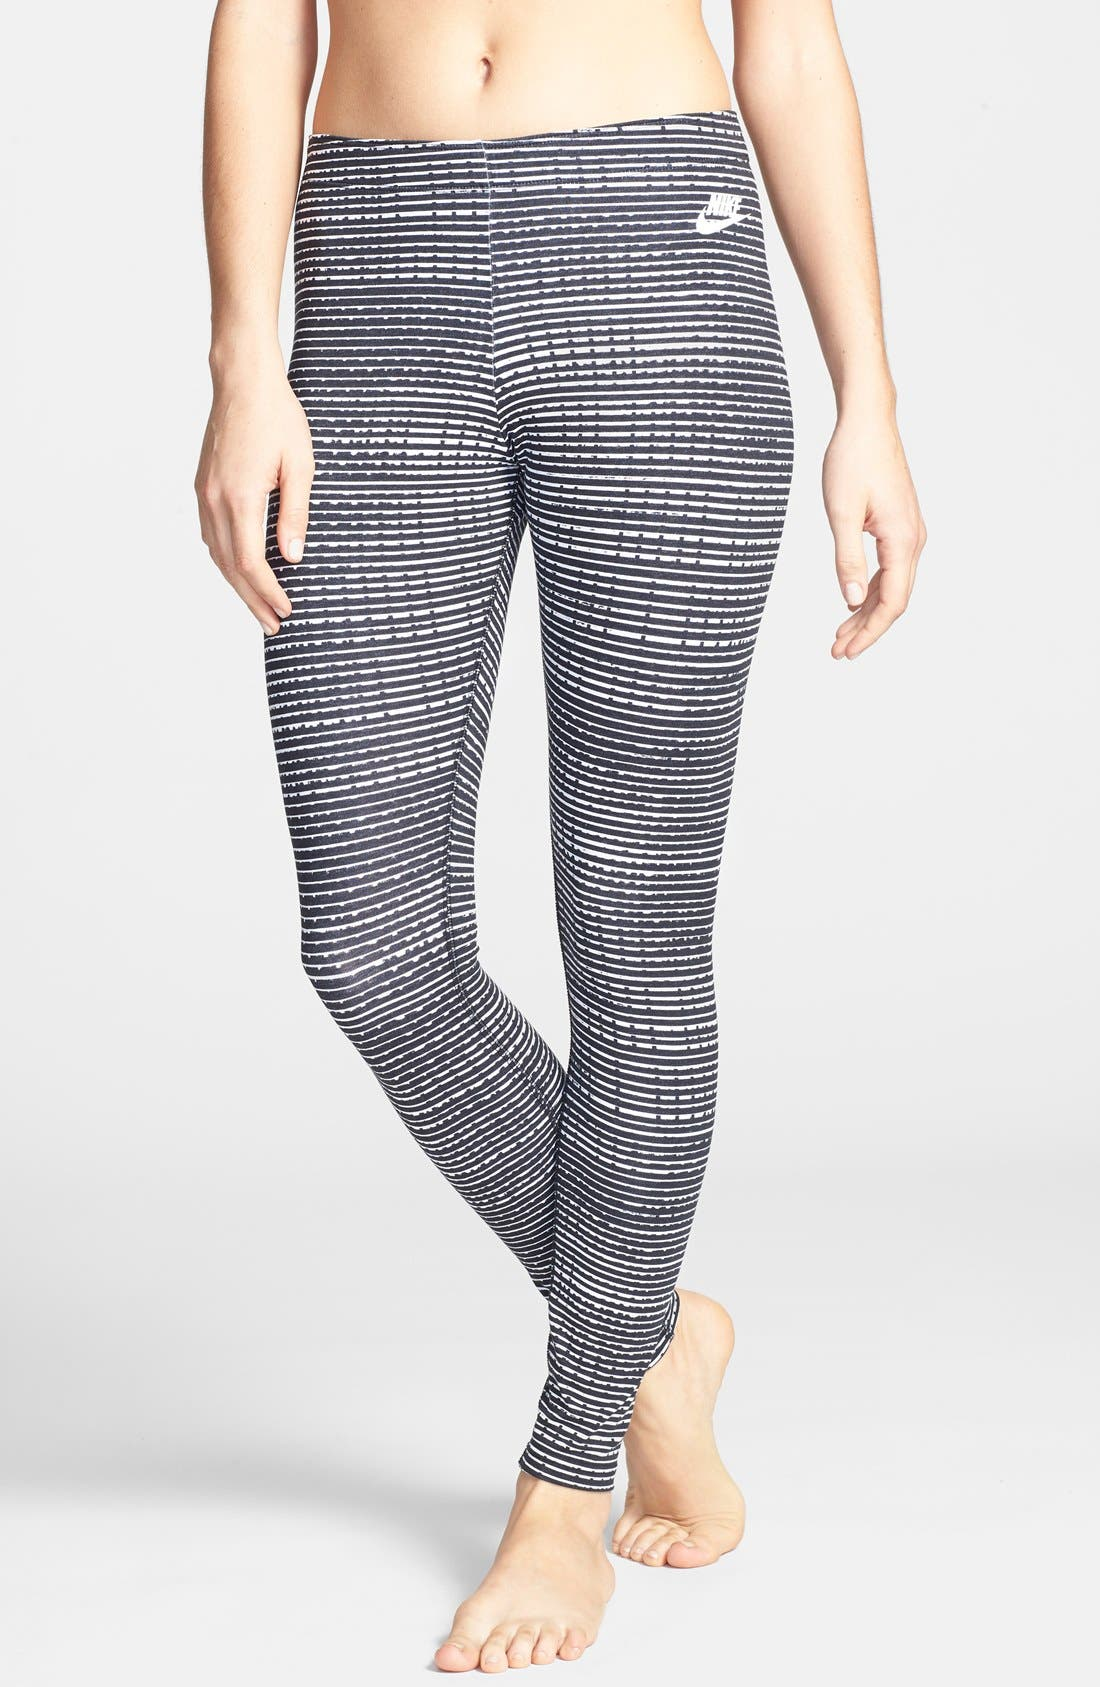 Alternate Image 1 Selected - Nike Leg-A-See AOP Tights